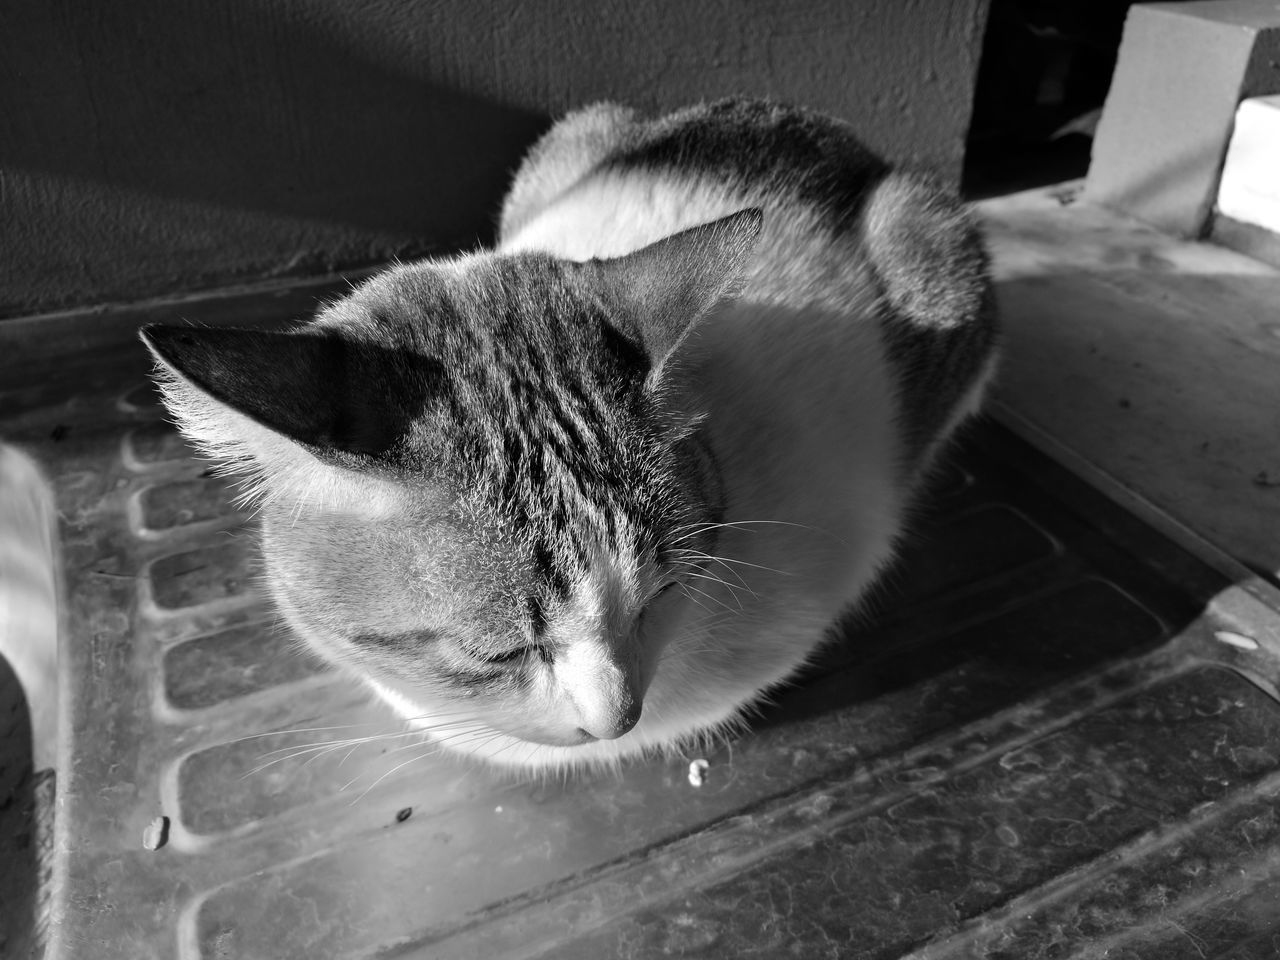 domestic cat, domestic animals, animal themes, pets, one animal, feline, mammal, cat, indoors, no people, whisker, close-up, day